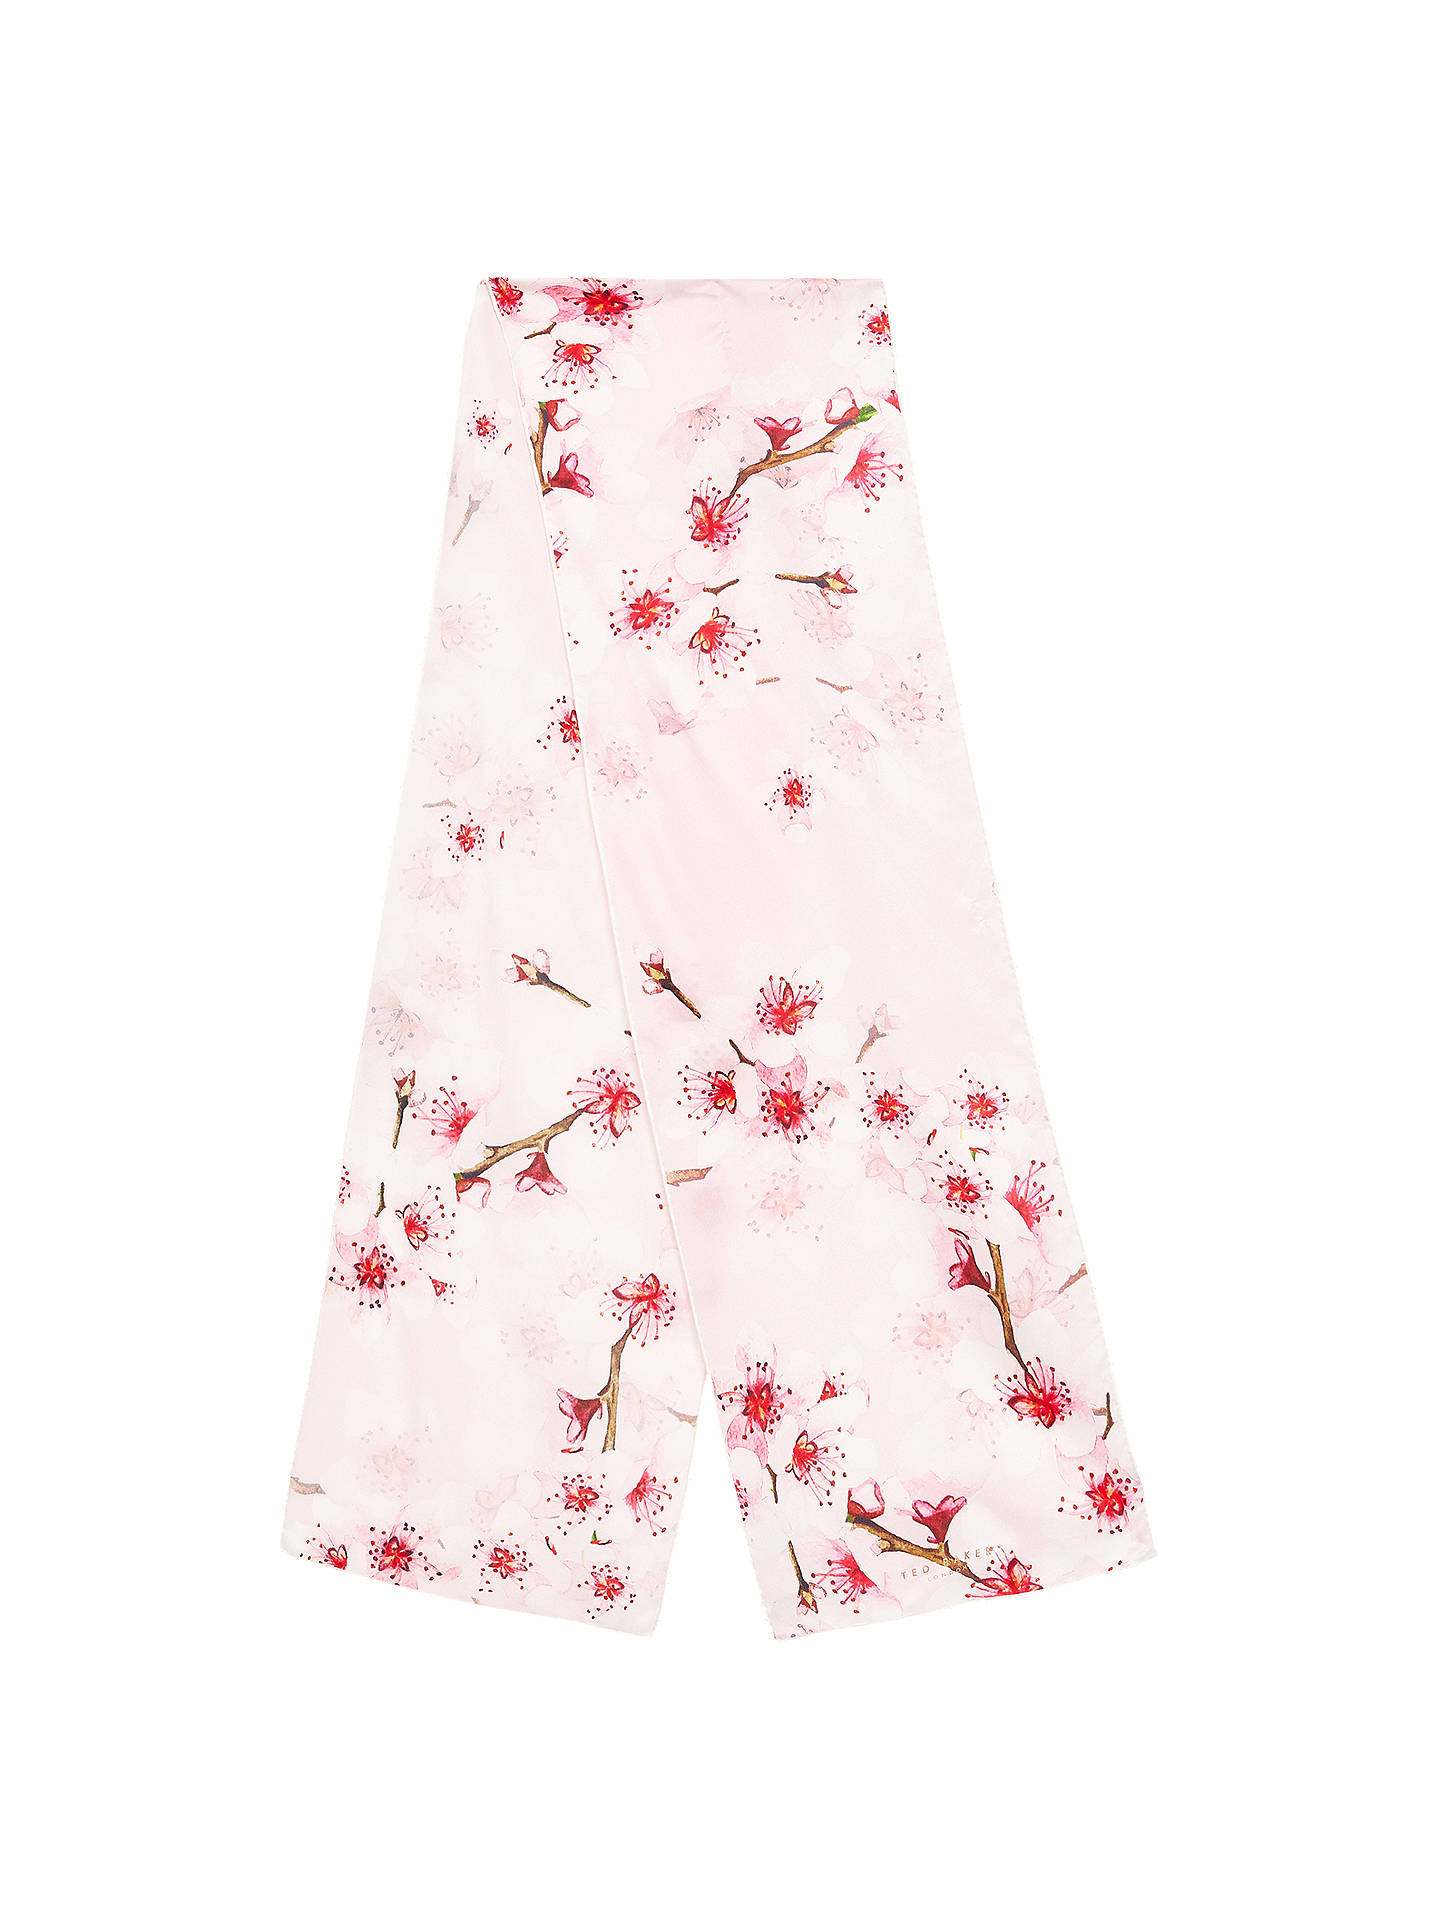 BuyTed Baker Brielle Soft Blossom Skinny Silk Scarf, Blush Online at johnlewis.com